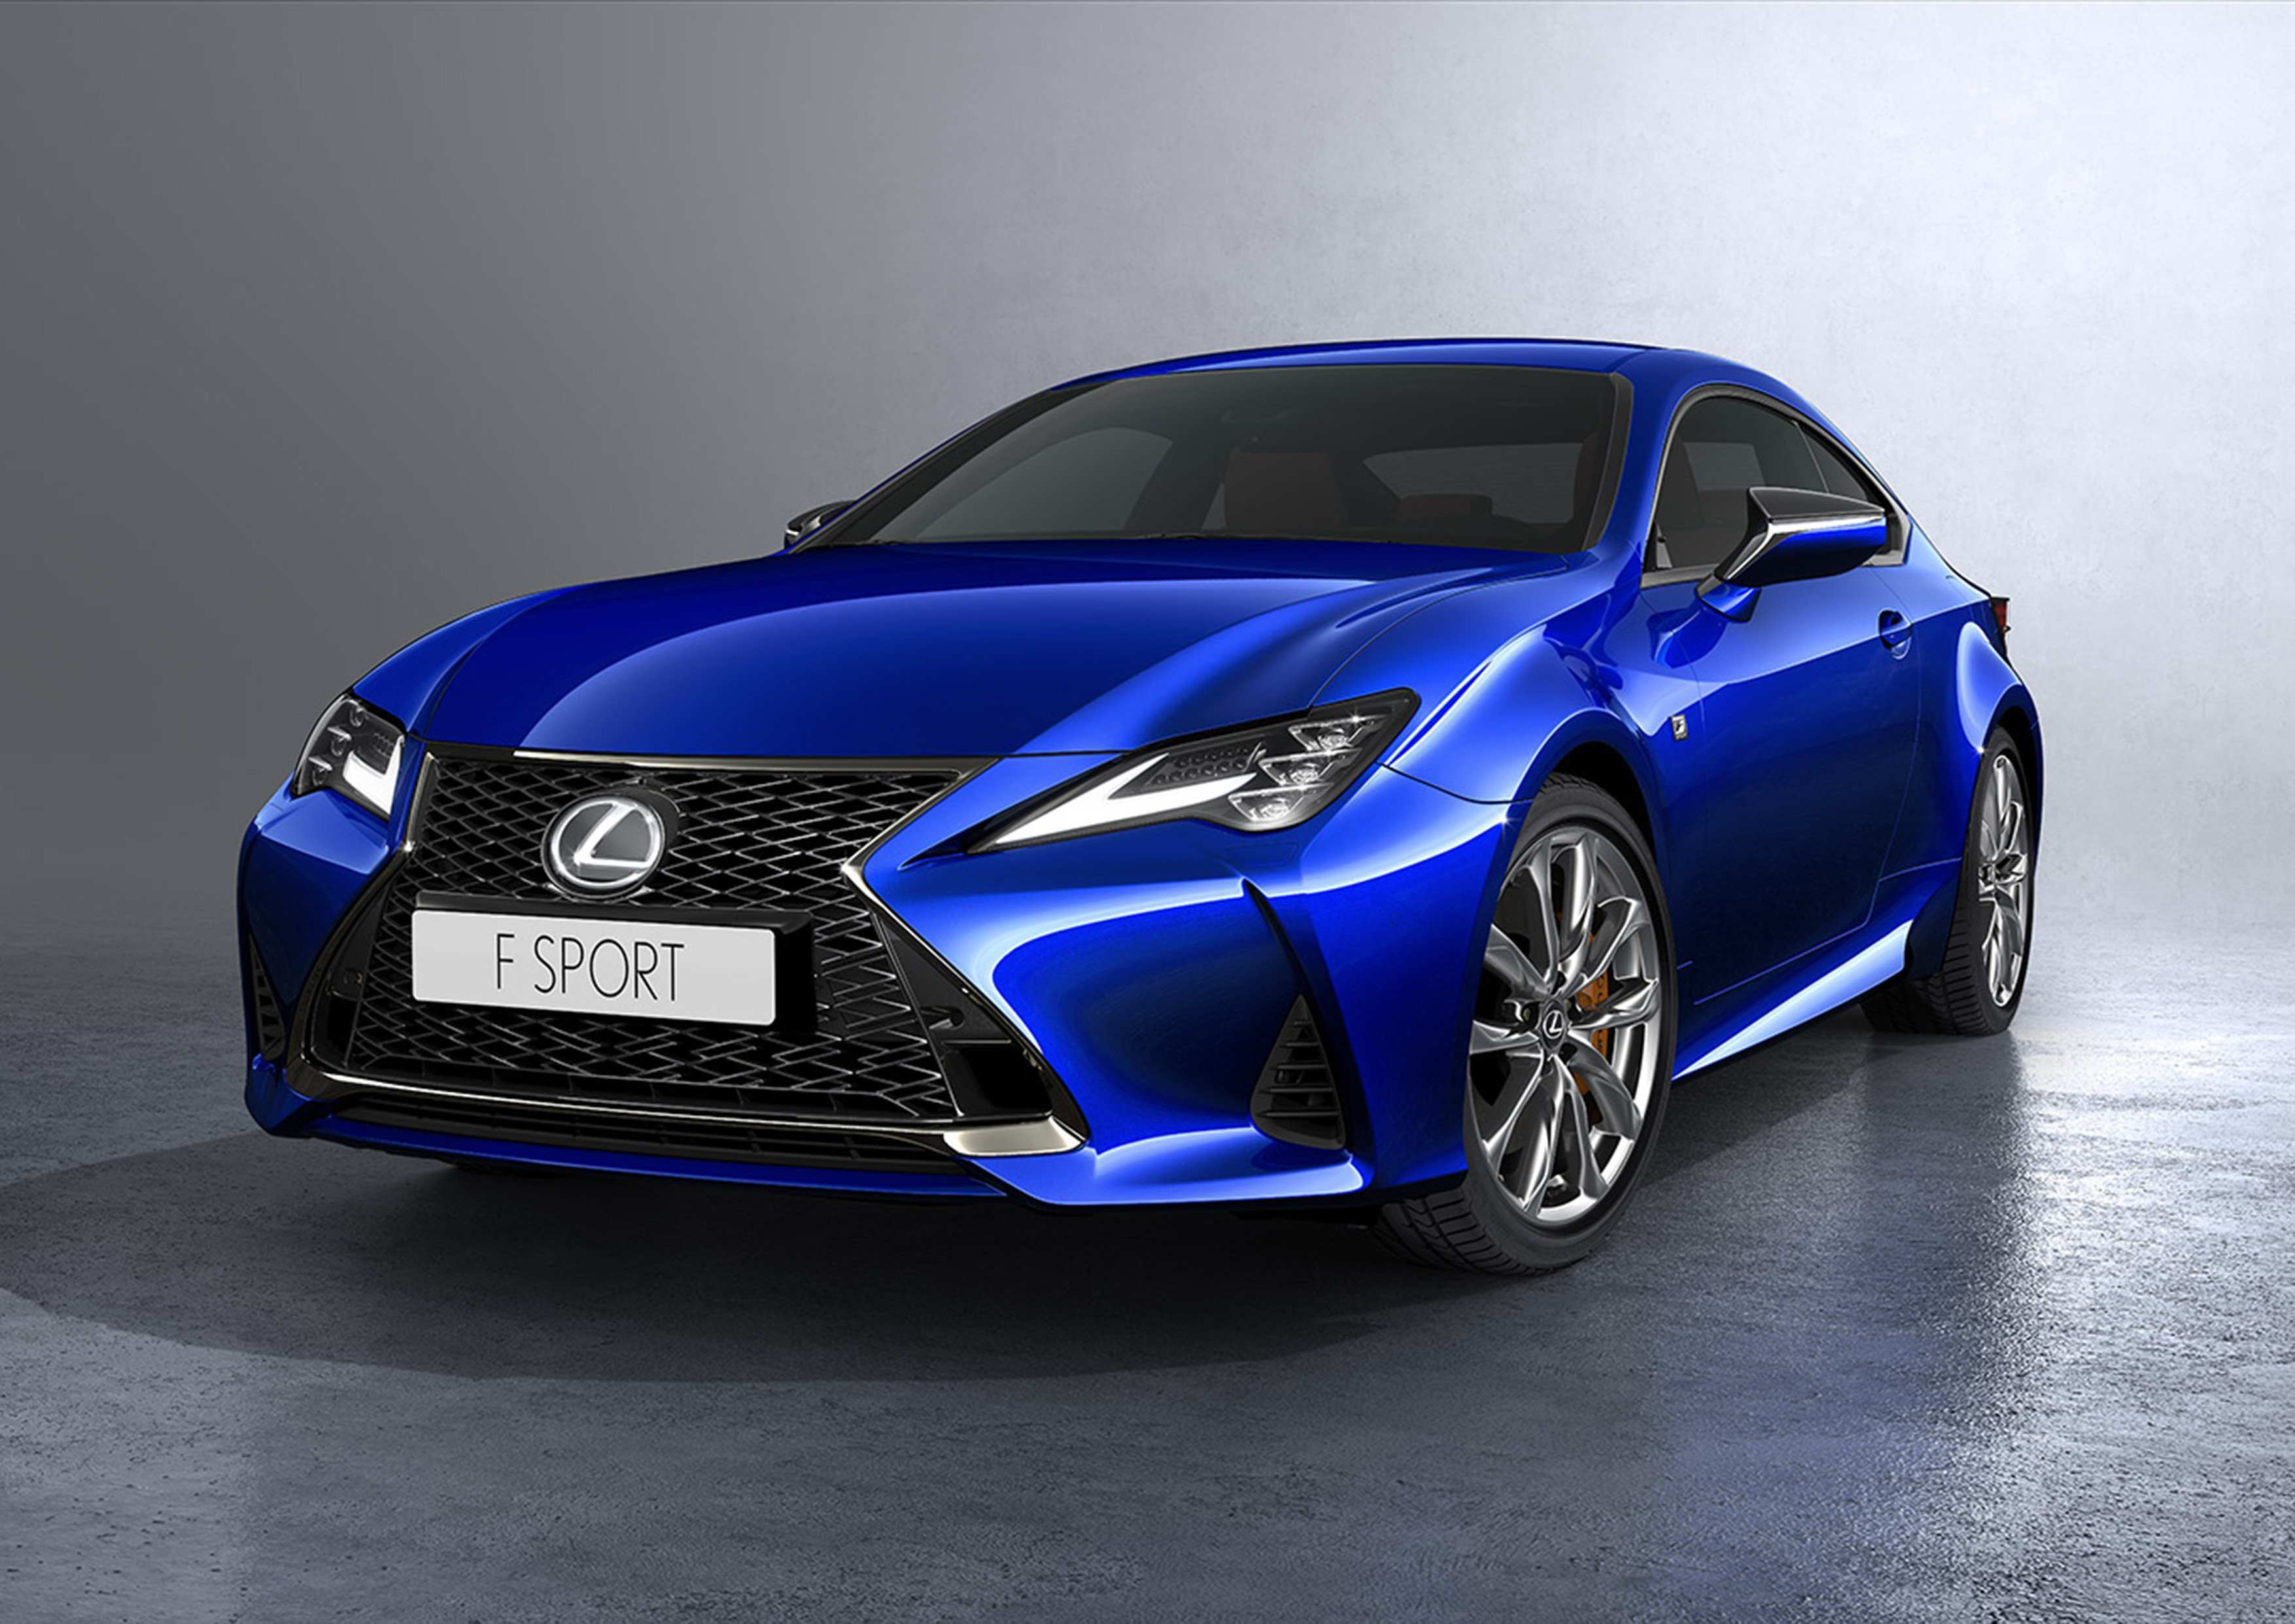 14 All New Lexus Coupe 2020 Images with Lexus Coupe 2020